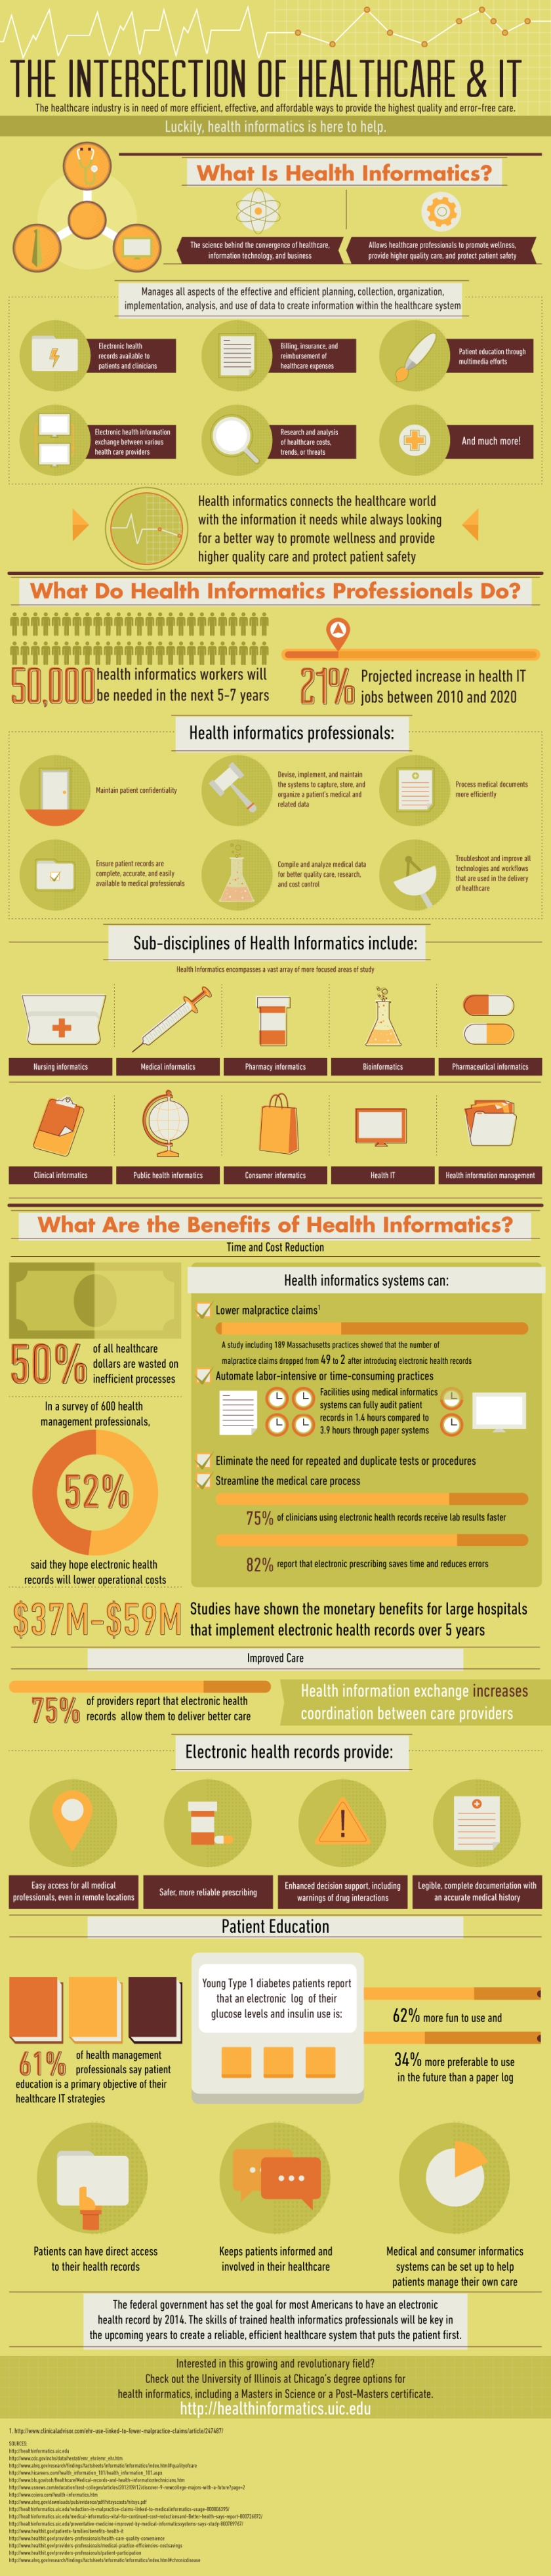 UIC_Intersection_of_Health_and_IT_Infographic